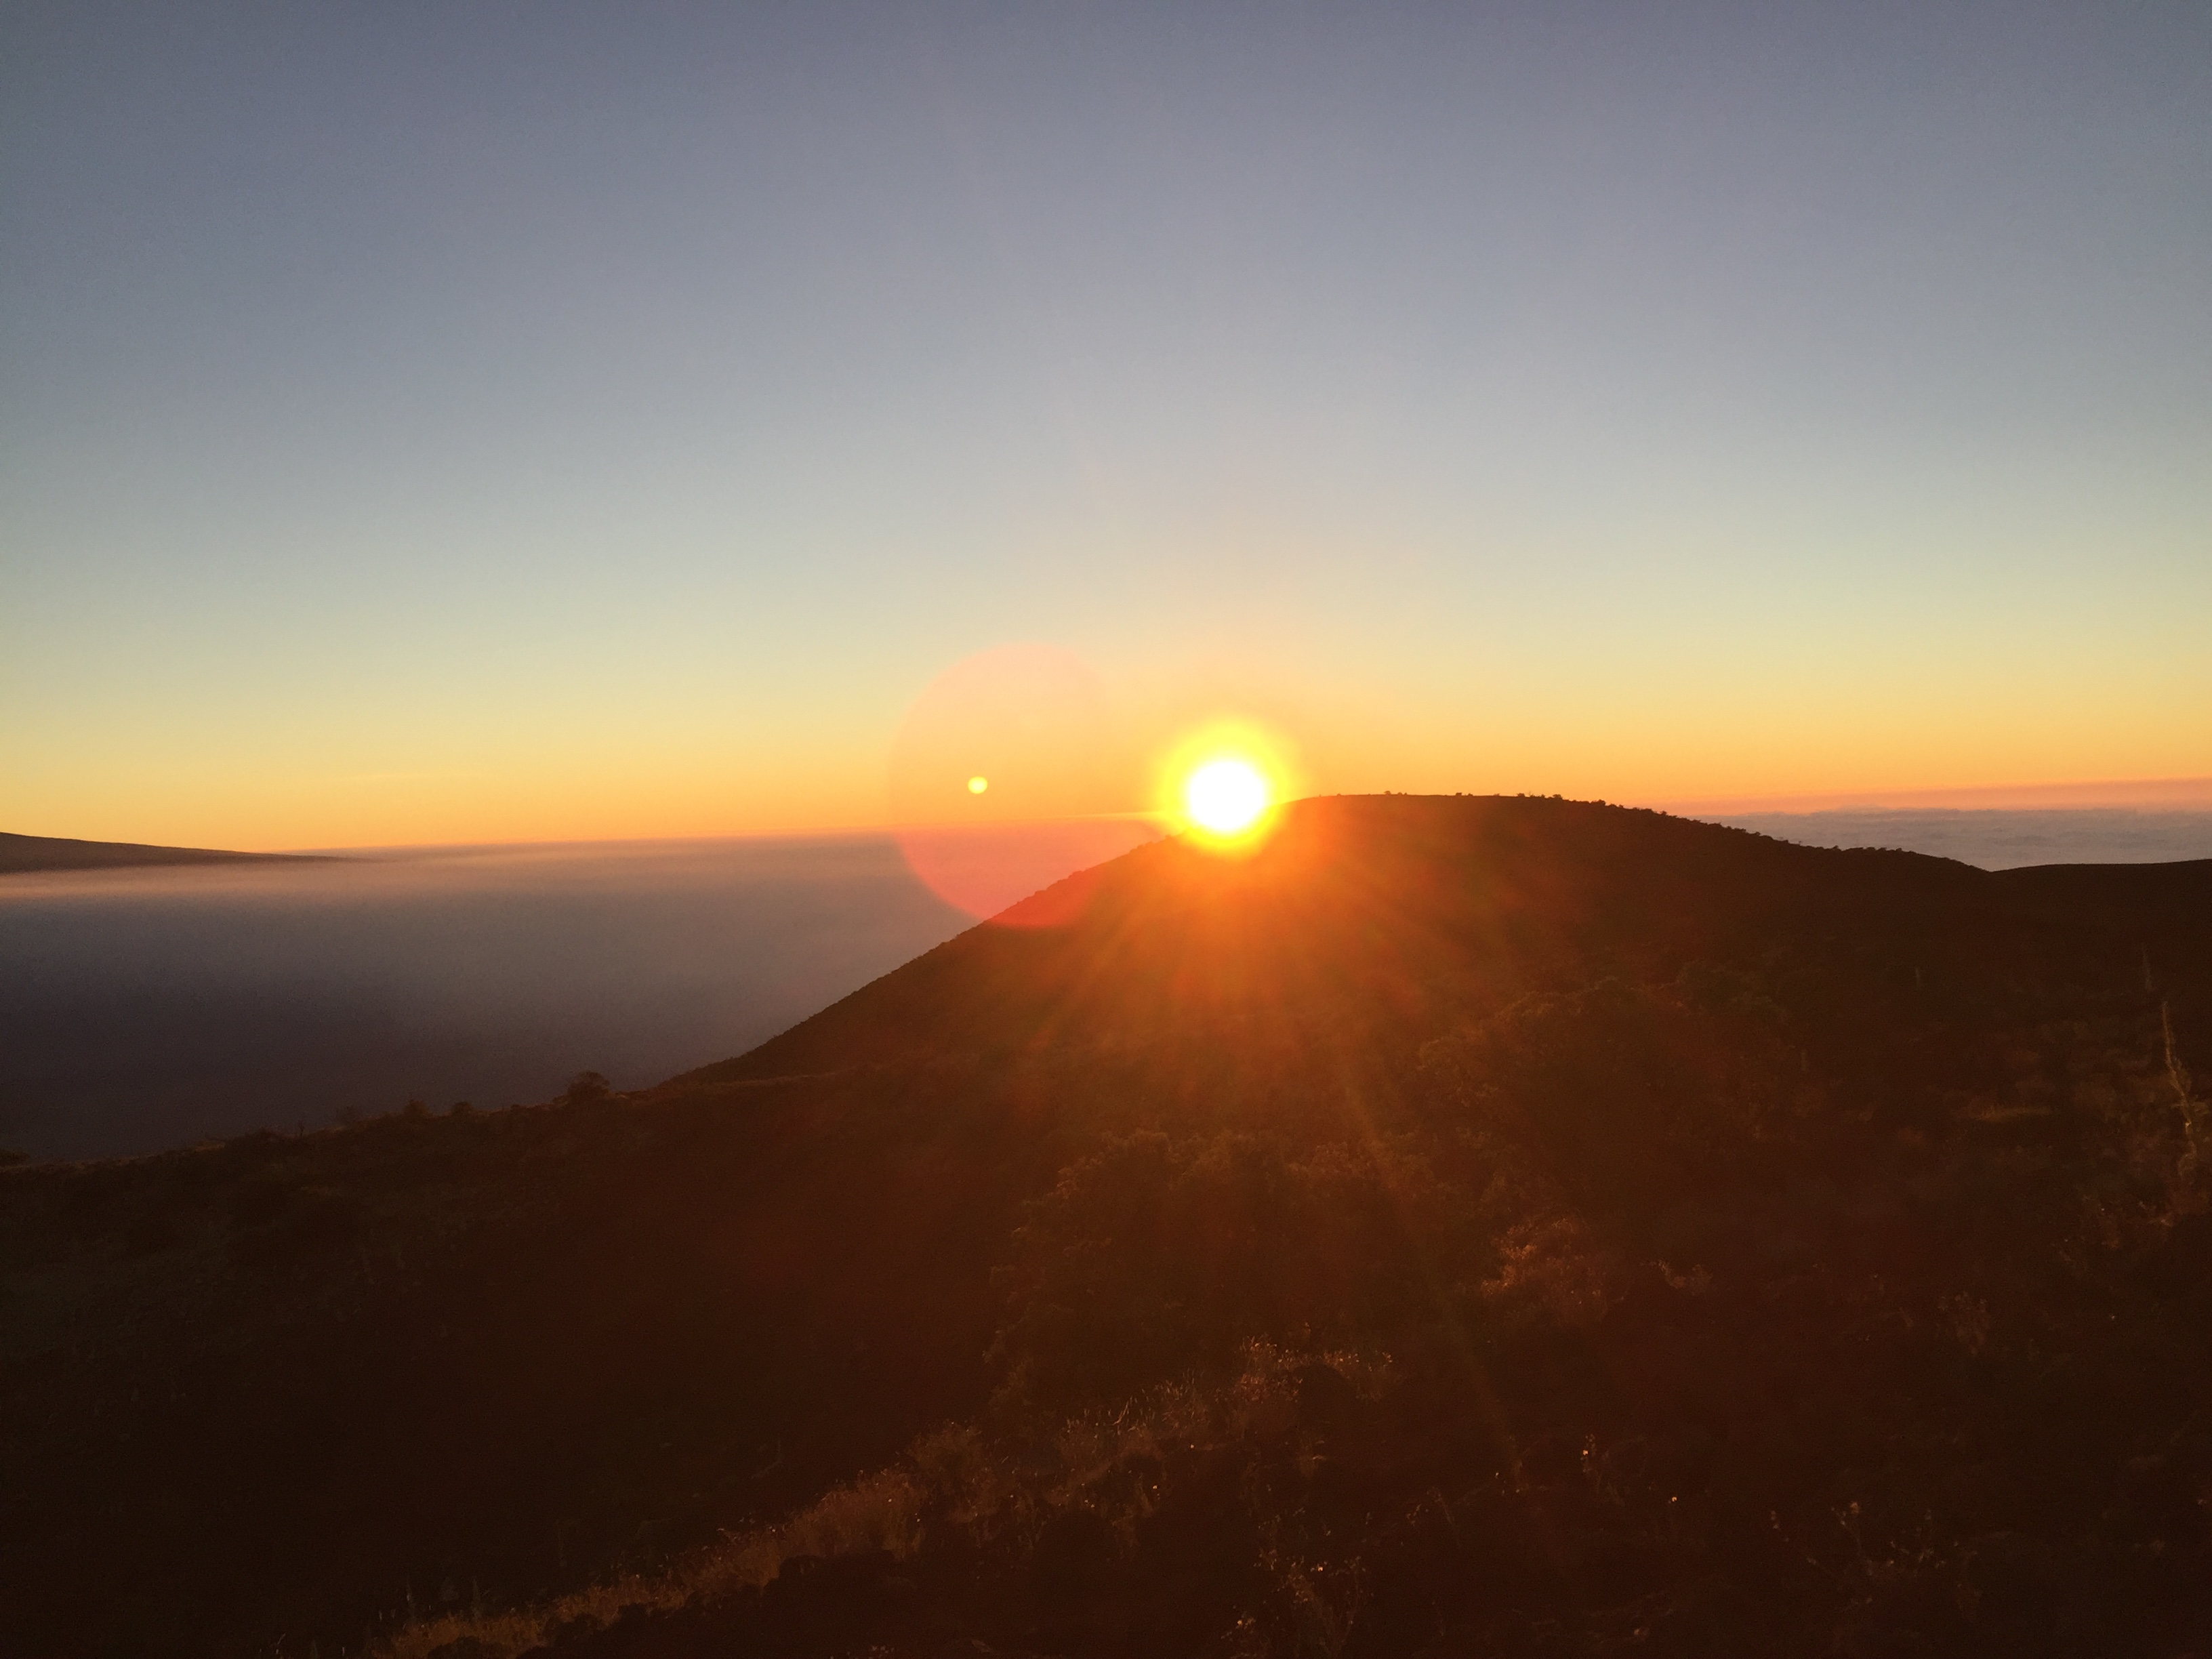 Sunset at the National Observator on Mauna Loa at 10,000 feet